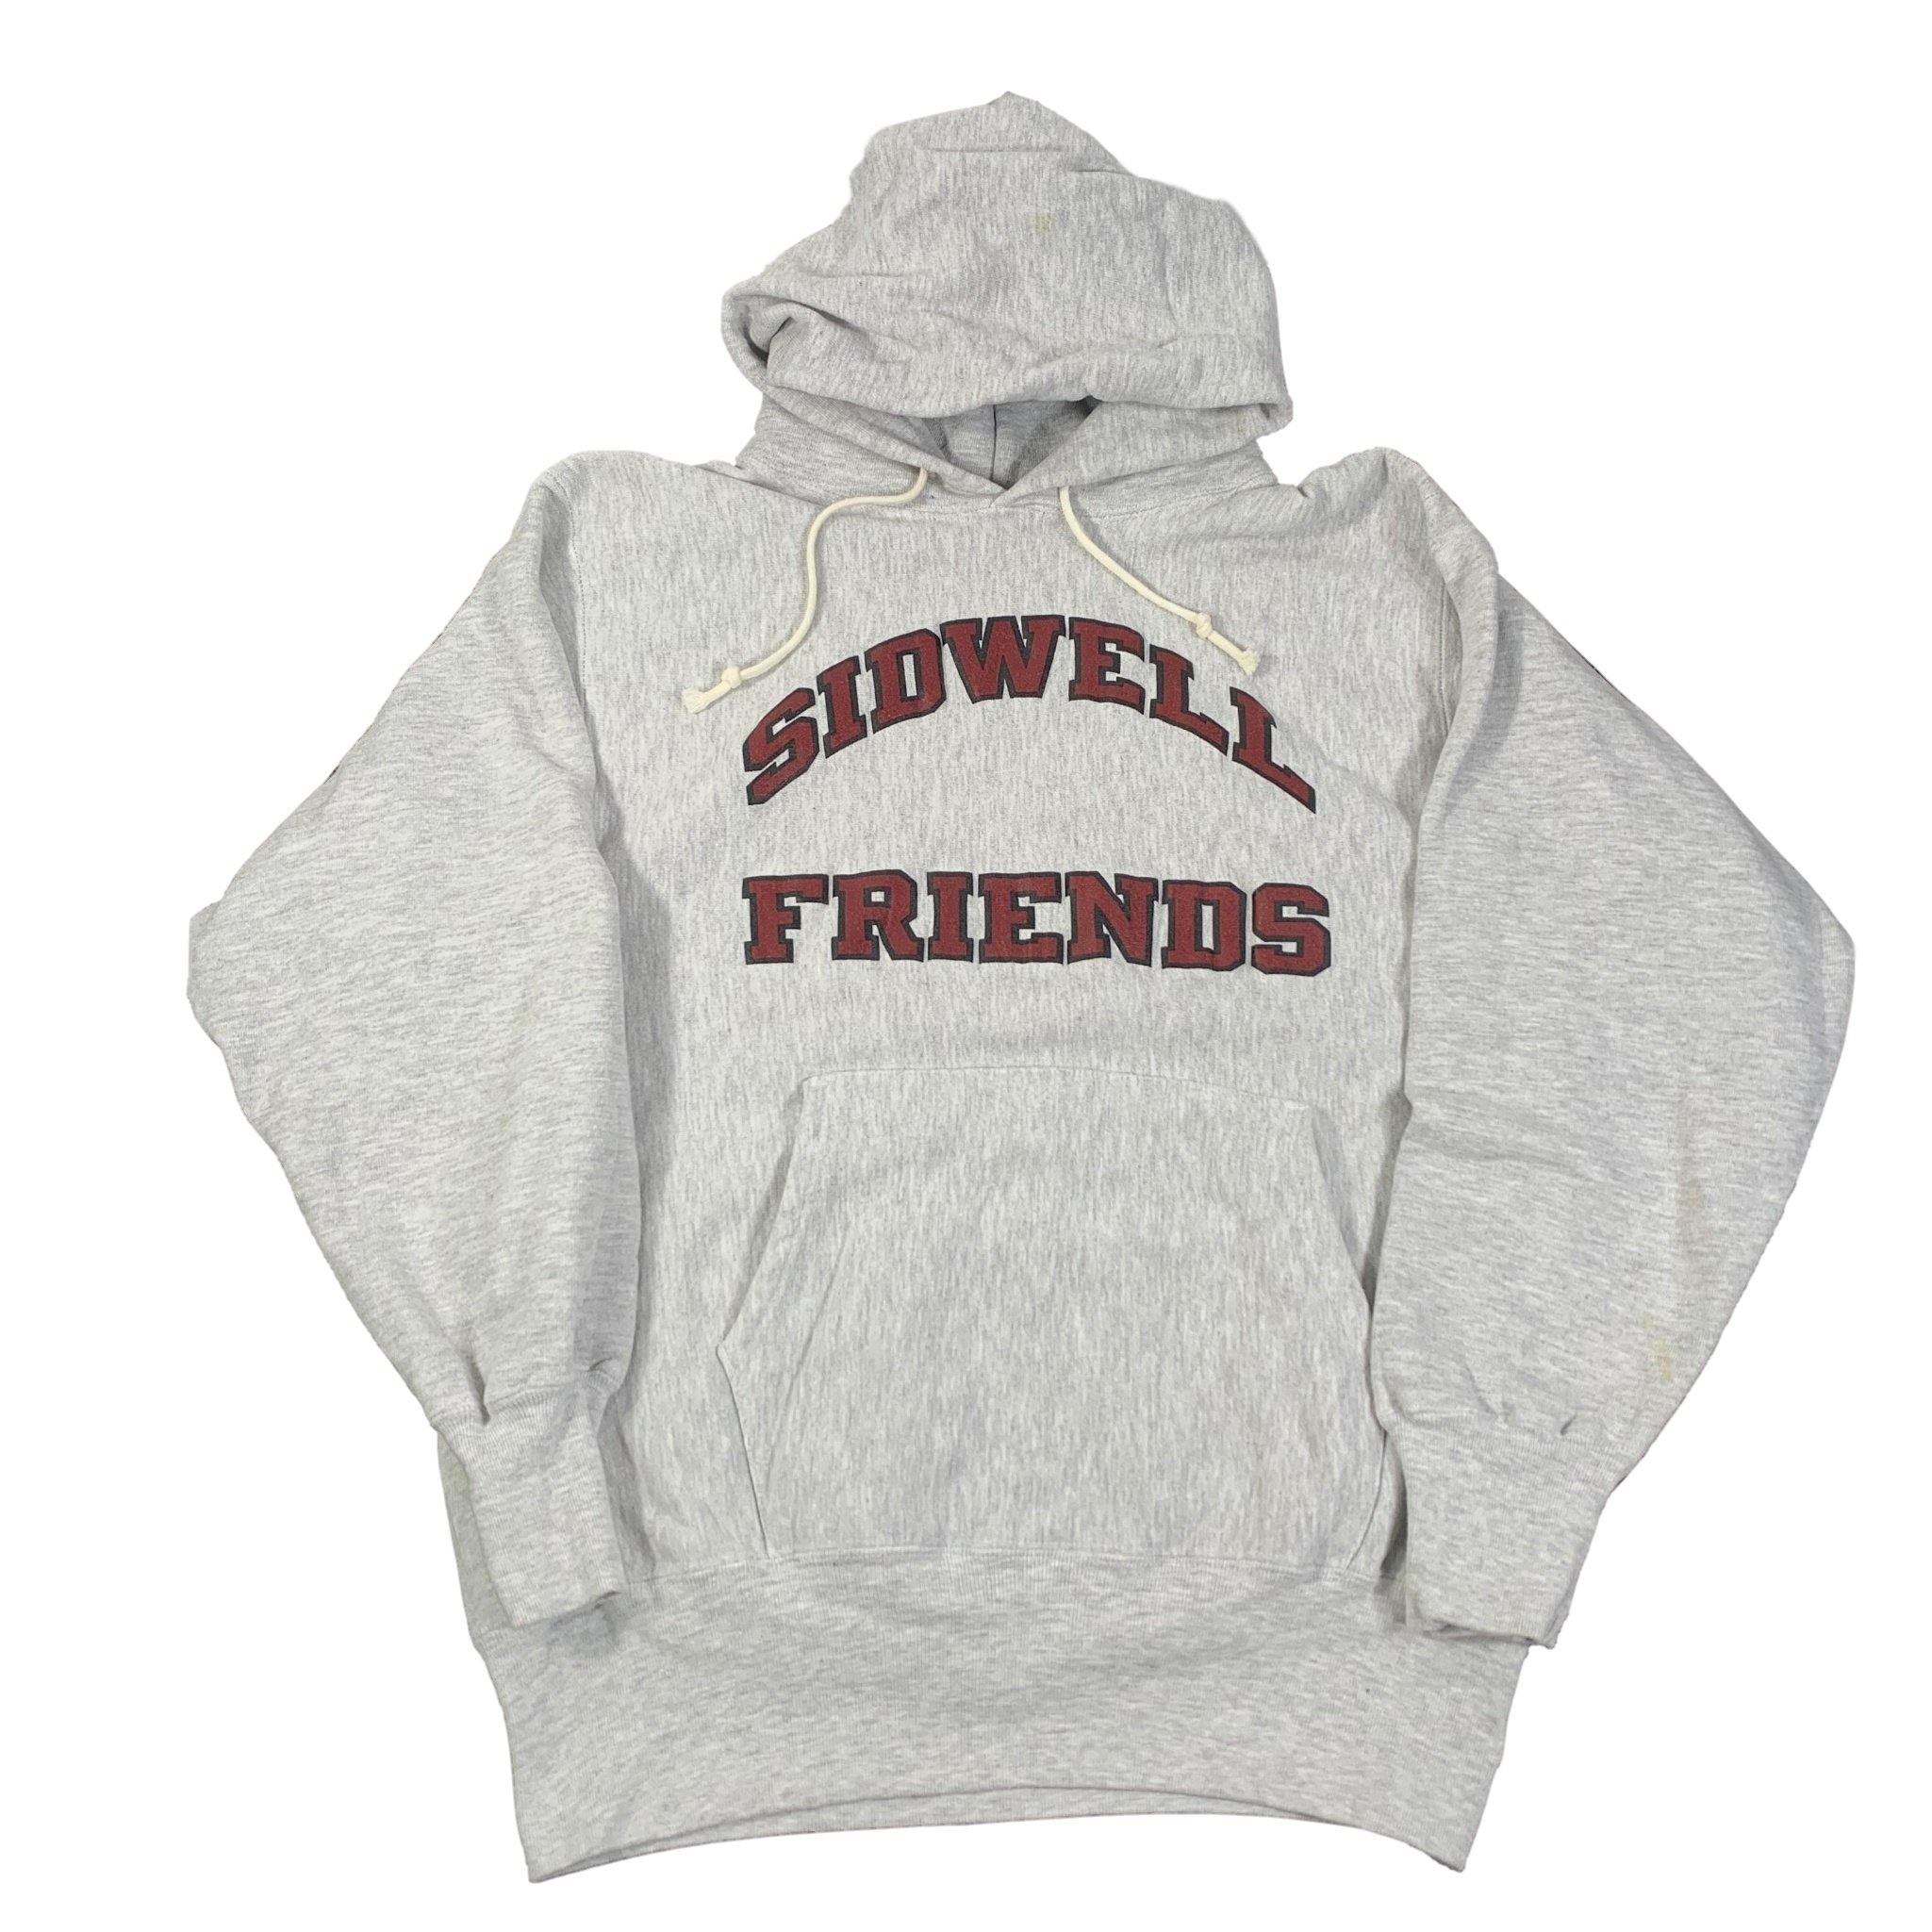 "Vintage Champion Reverse Weave ""Sidwell Friends"" Pullover Hoodie"